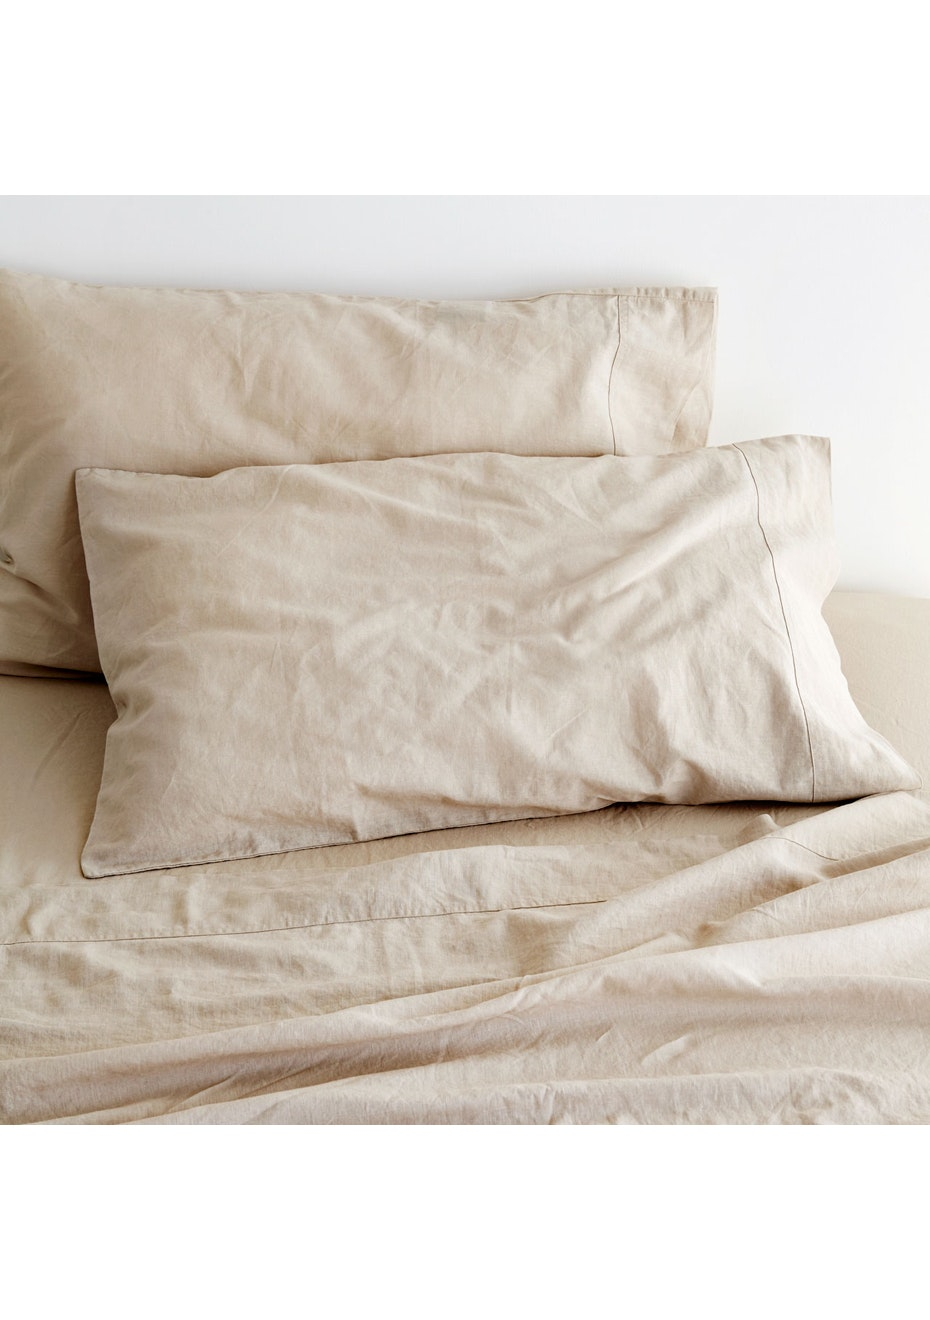 Sogno Linen Cotton Sheet Set Cappuccino Taupe King Bed